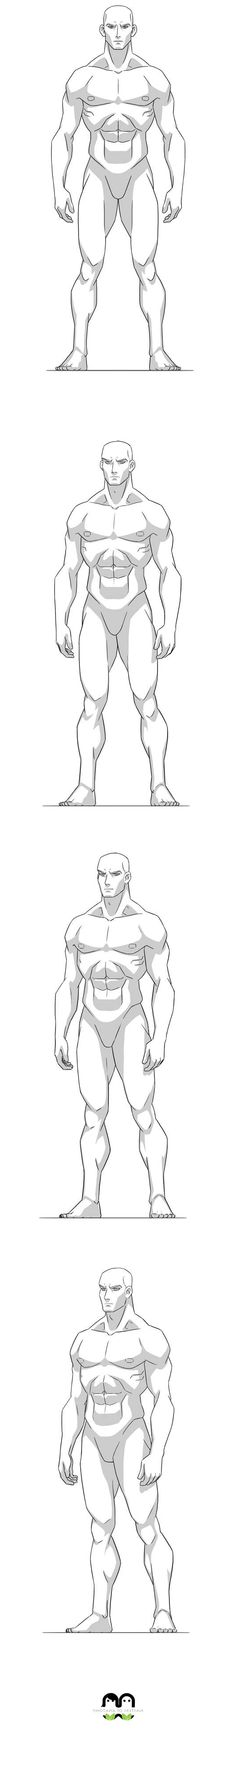 Art of Masters of Anatomy*   • Purchase | (http://mastersofanatomy.com/paypal)  ★ || CHARACTER DESIGN REFERENCES™ (https://www.facebook.com/CharacterDesignReferences & https://www.pinterest.com/characterdesigh) • Love Character Design? Join the #CDChallenge (link→ https://www.facebook.com/groups/CharacterDesignChallenge) Share your unique vision of a theme, promote your art in a community of over 50.000 artists! || ★